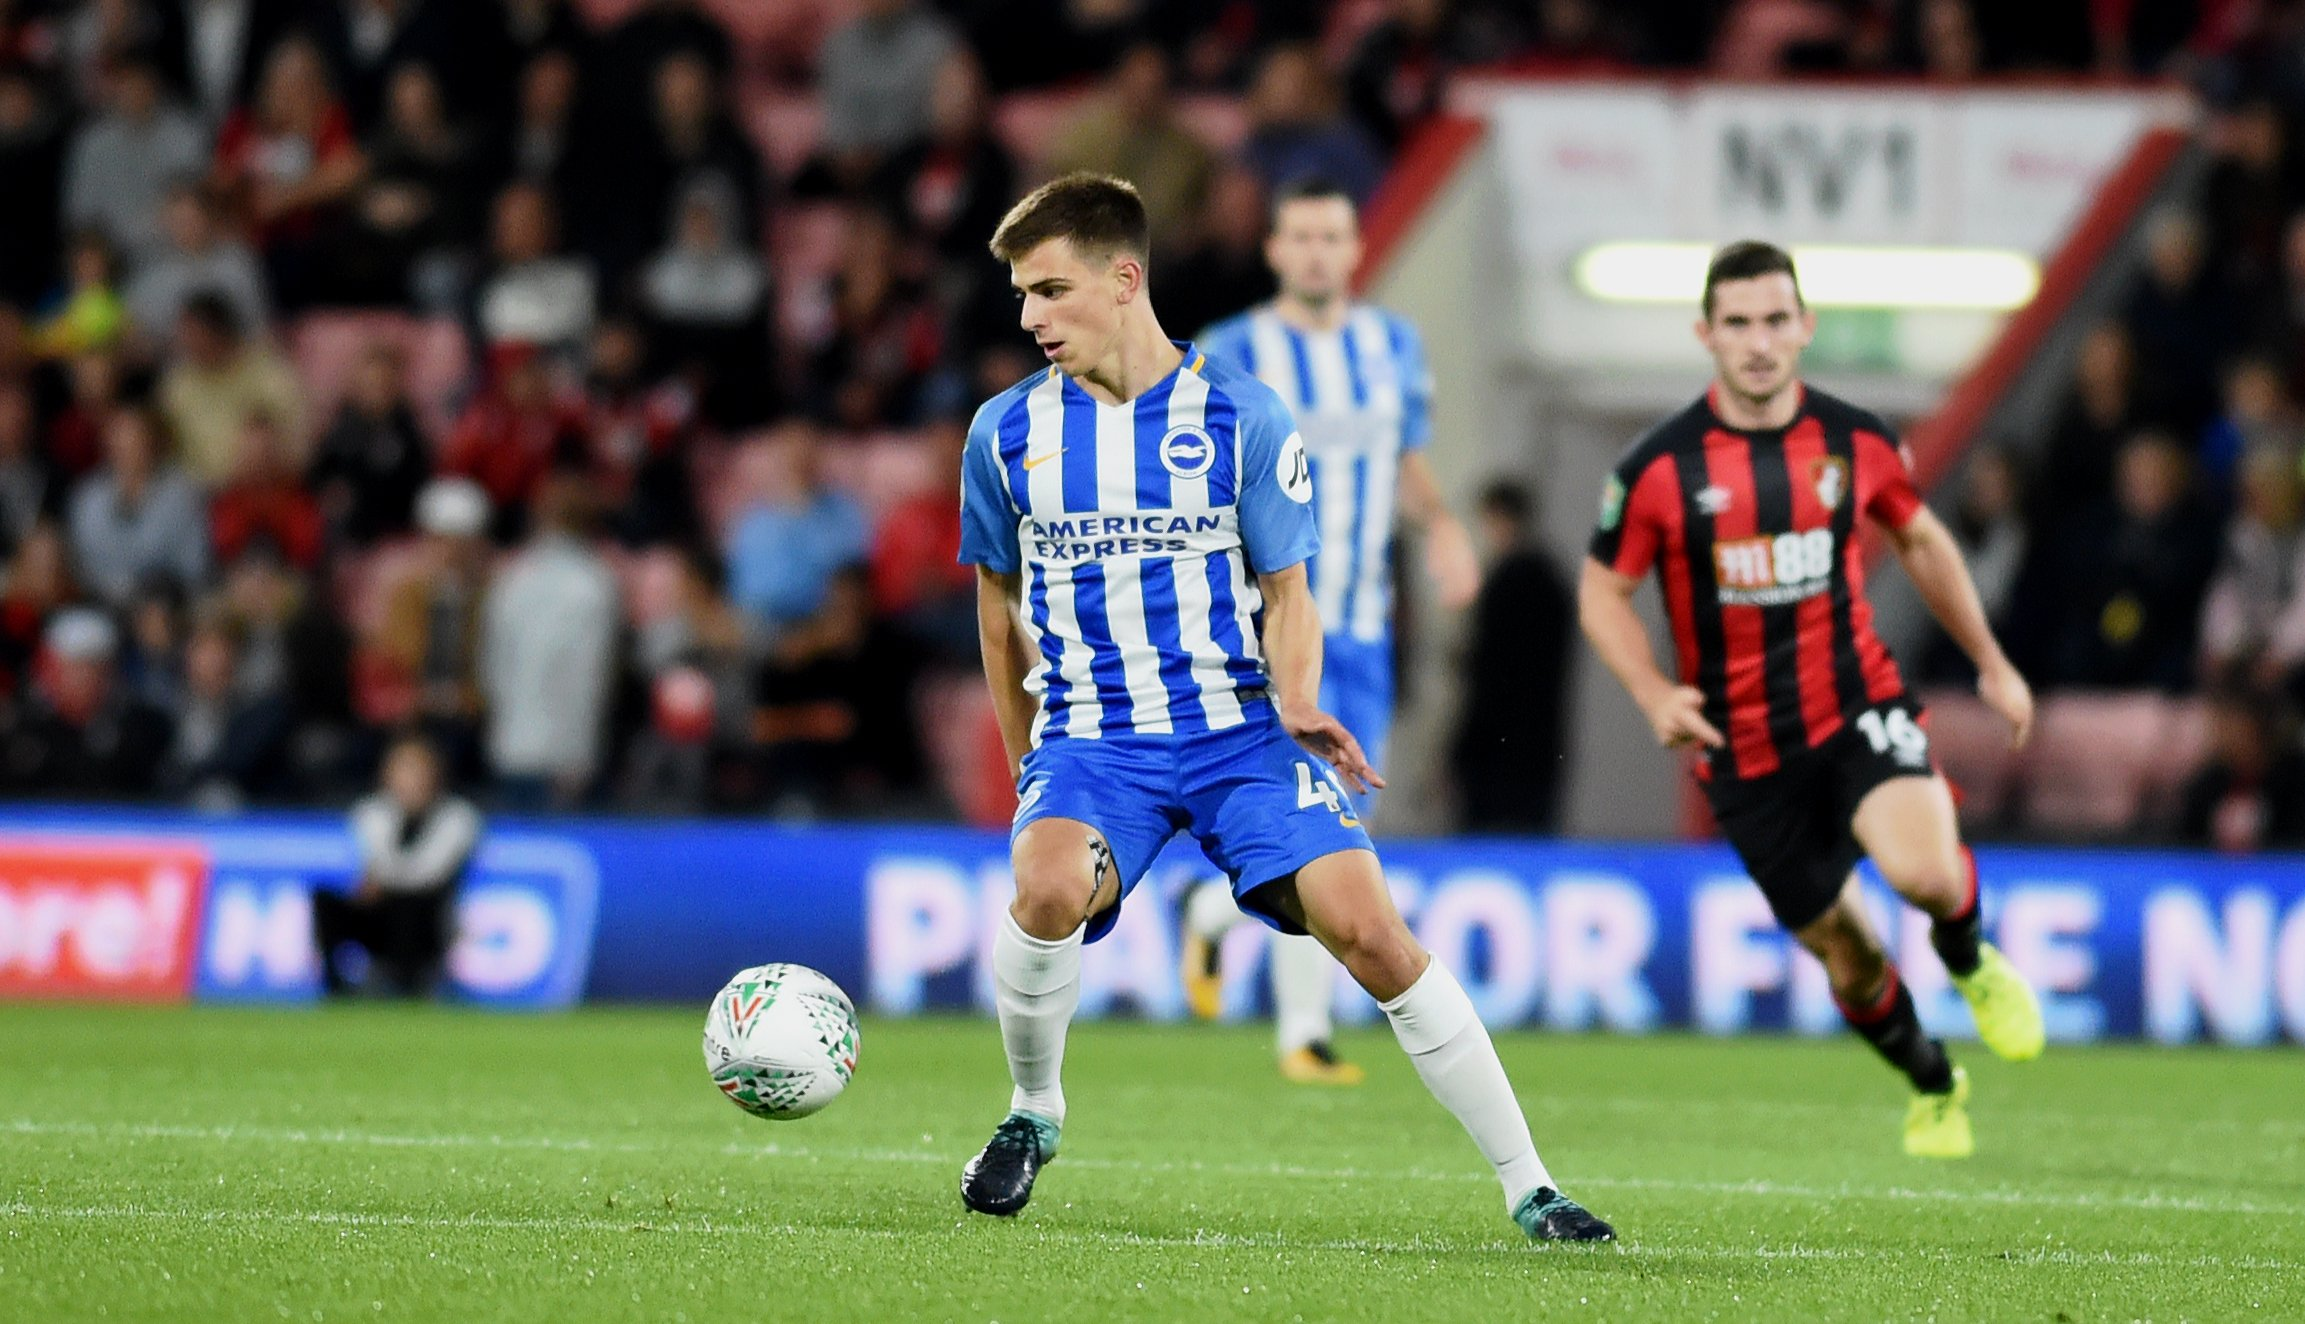 Molumby returns as Albion win at Manchester City